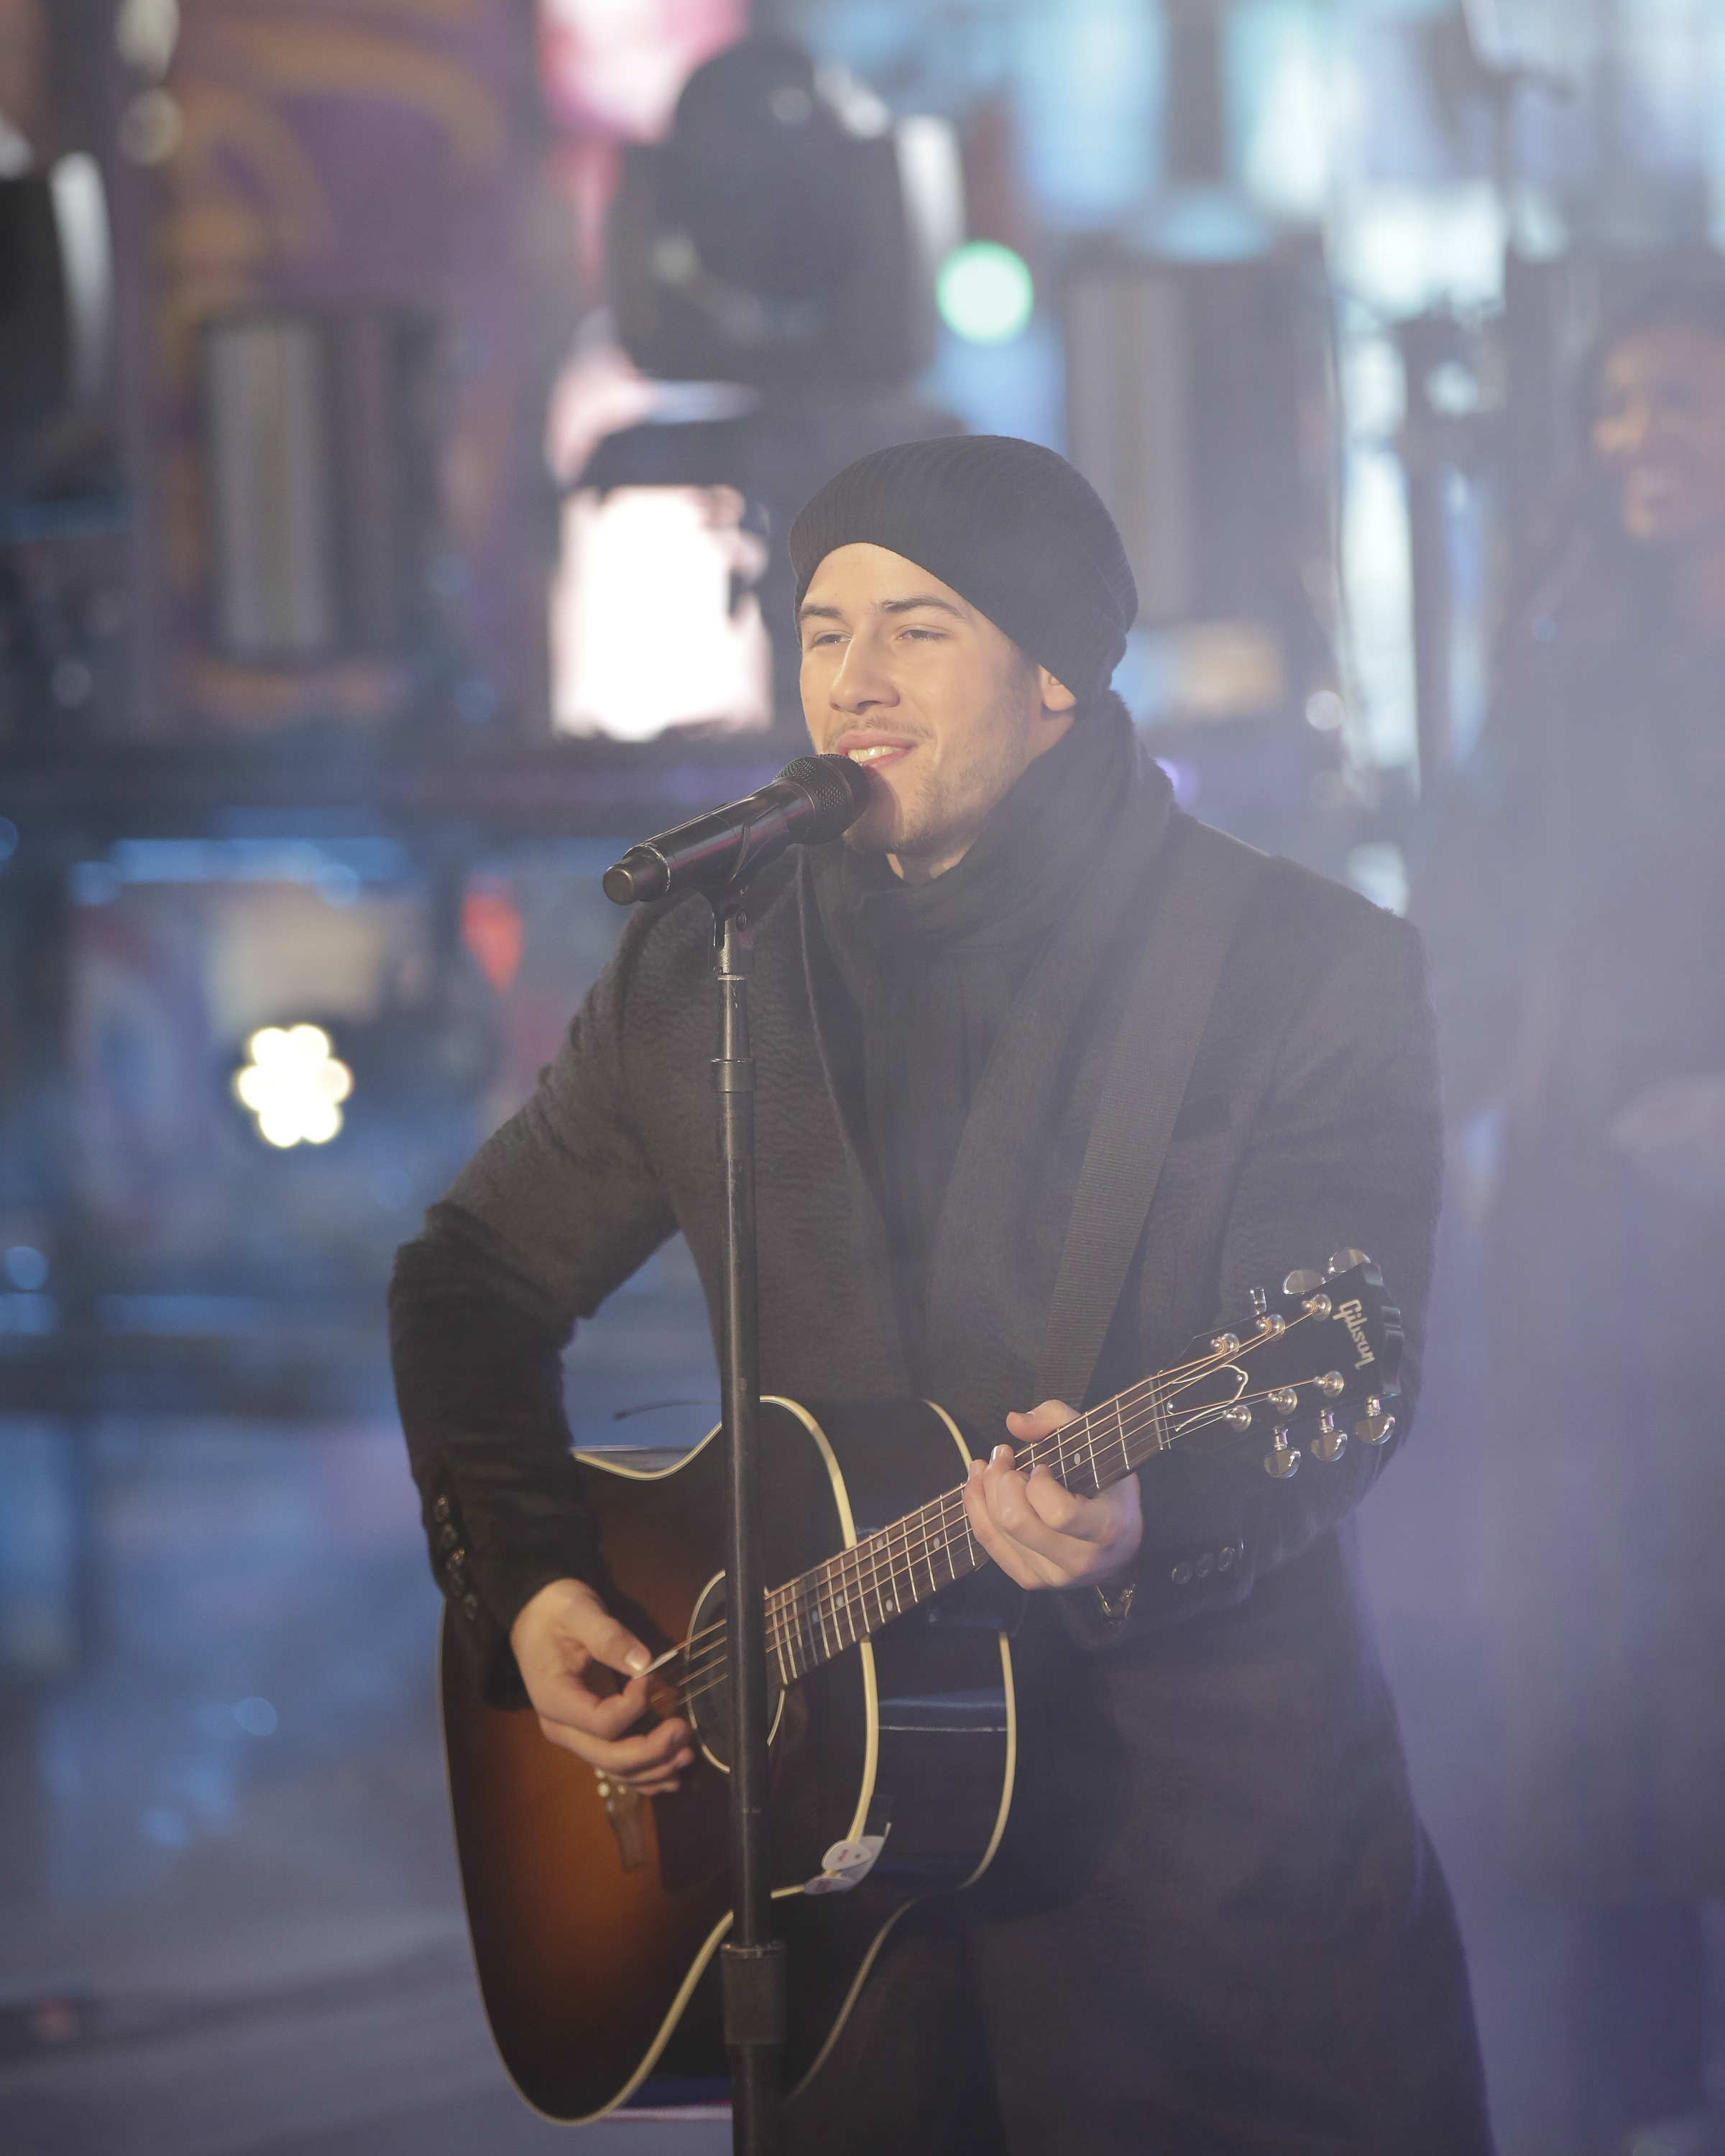 "<div class=""meta image-caption""><div class=""origin-logo origin-image ap""><span>AP</span></div><span class=""caption-text"">Nick Jonas performs on stage at the New Year's Eve celebration in Times Square on Sunday, Dec. 31, 2017, in New York. (Photo by Brent N. Clarke/Invision/AP) (Brent N. Clarke/Invision/AP)</span></div>"